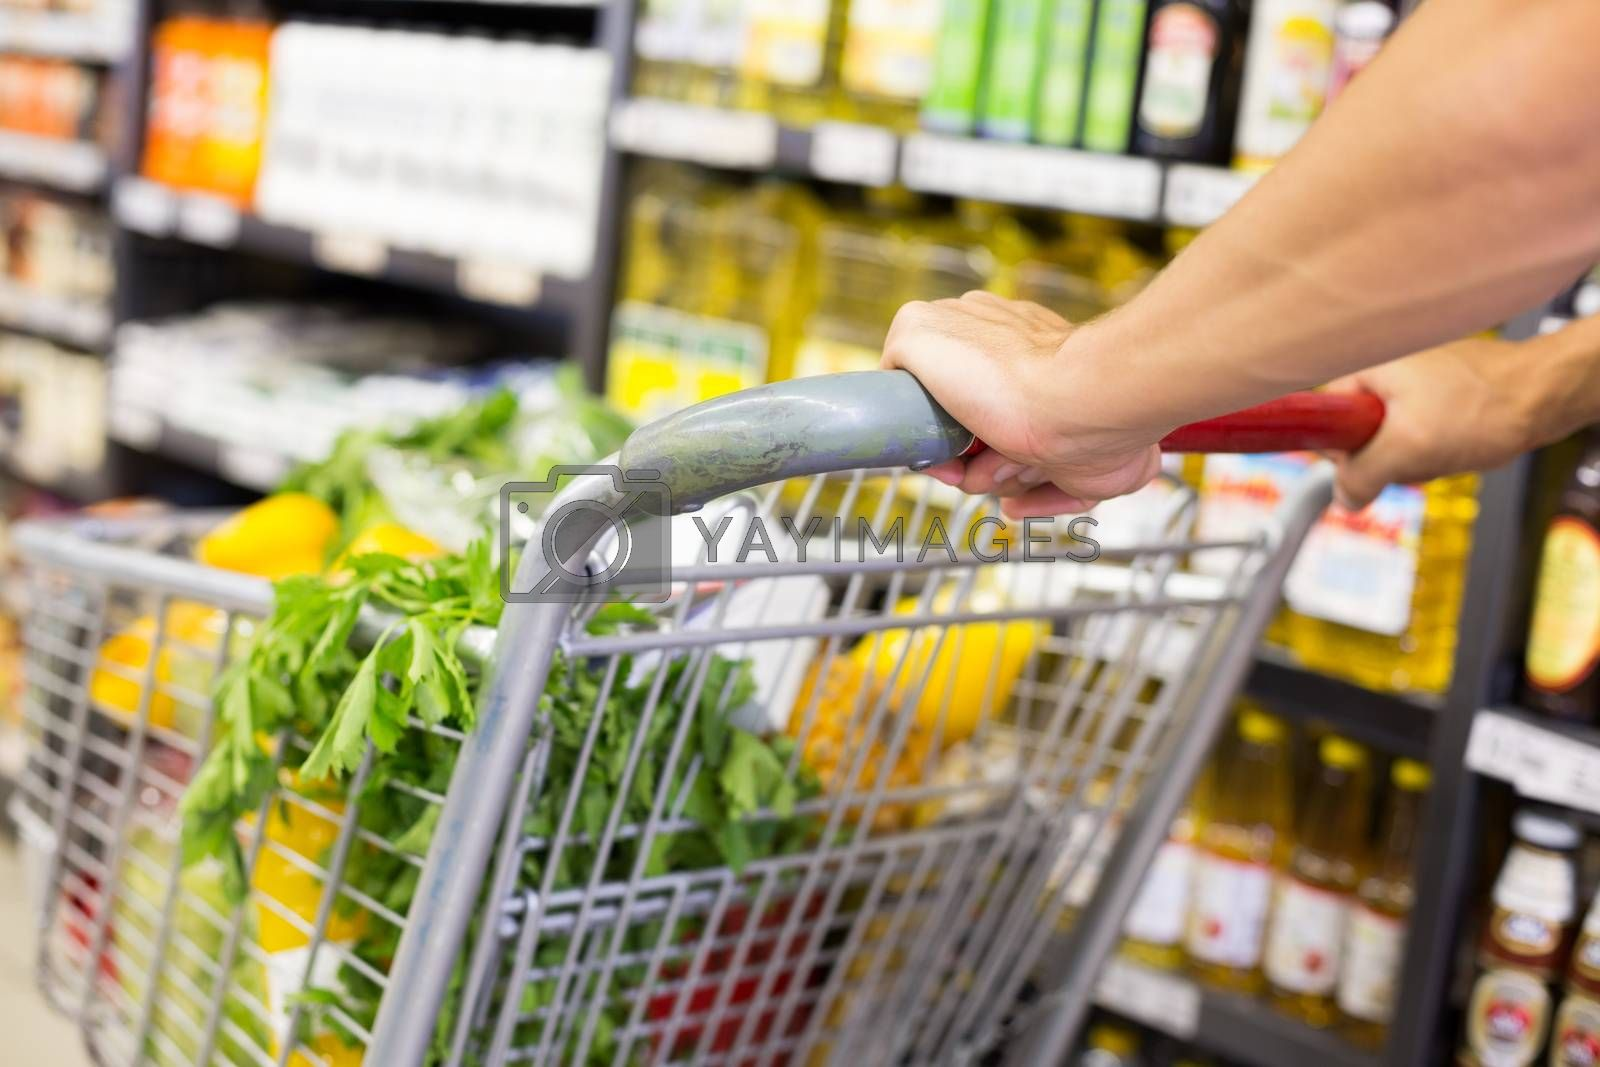 Royalty free image of Man pushing his trolley on aisle  by Wavebreakmedia